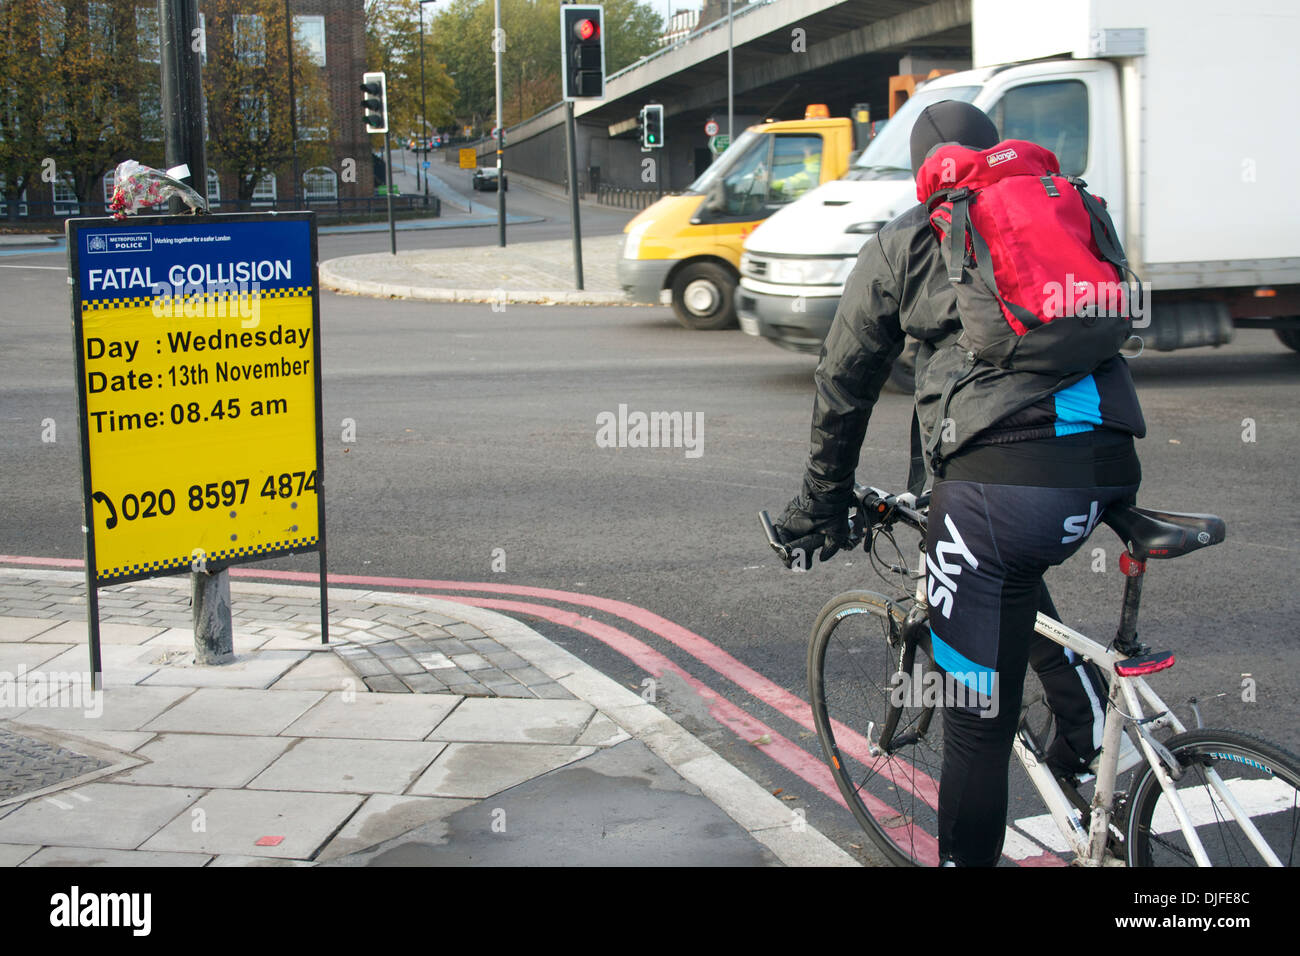 Cyclist, police sign and traffic at Bow flyover, London - Stock Image